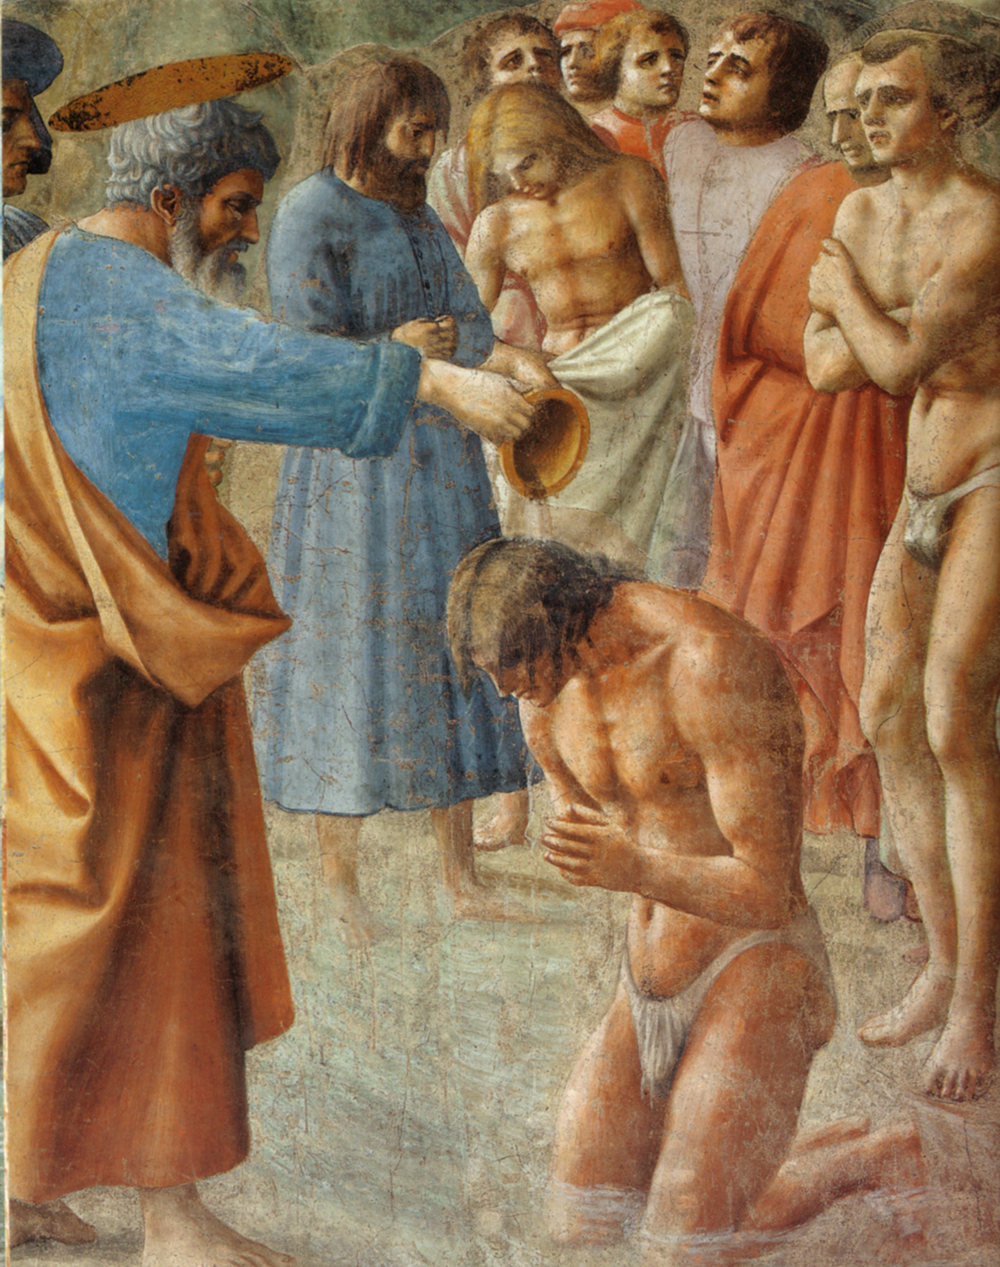 was baptism instituted before or after jesus u0027 death and